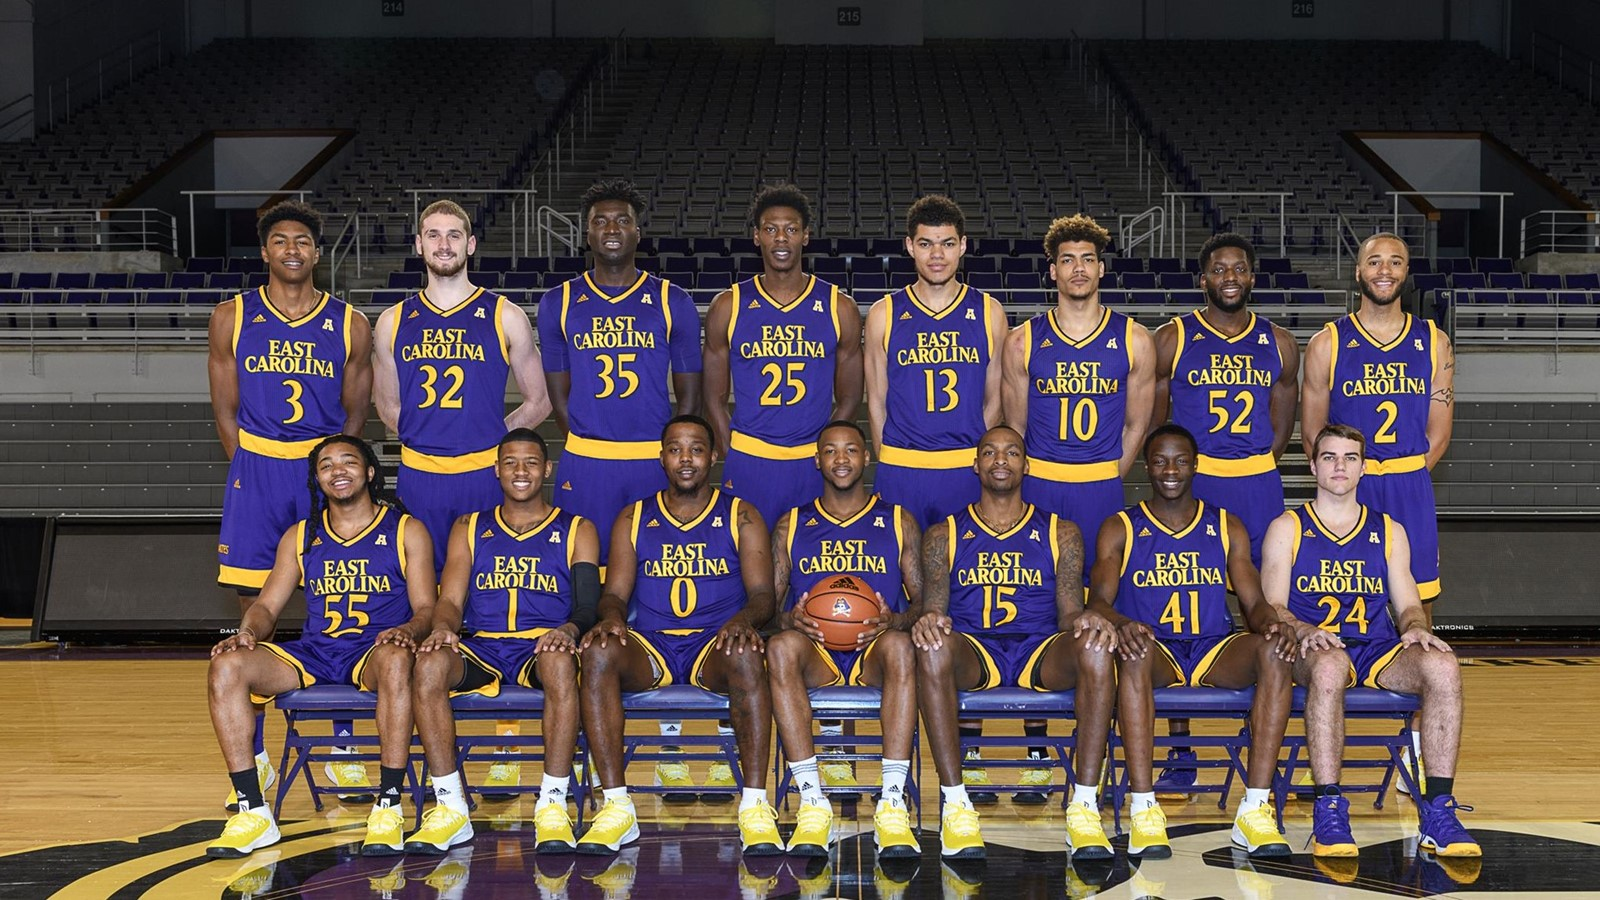 a070130c3 2017-18 Men s Basketball Roster - East Carolina University Athletics